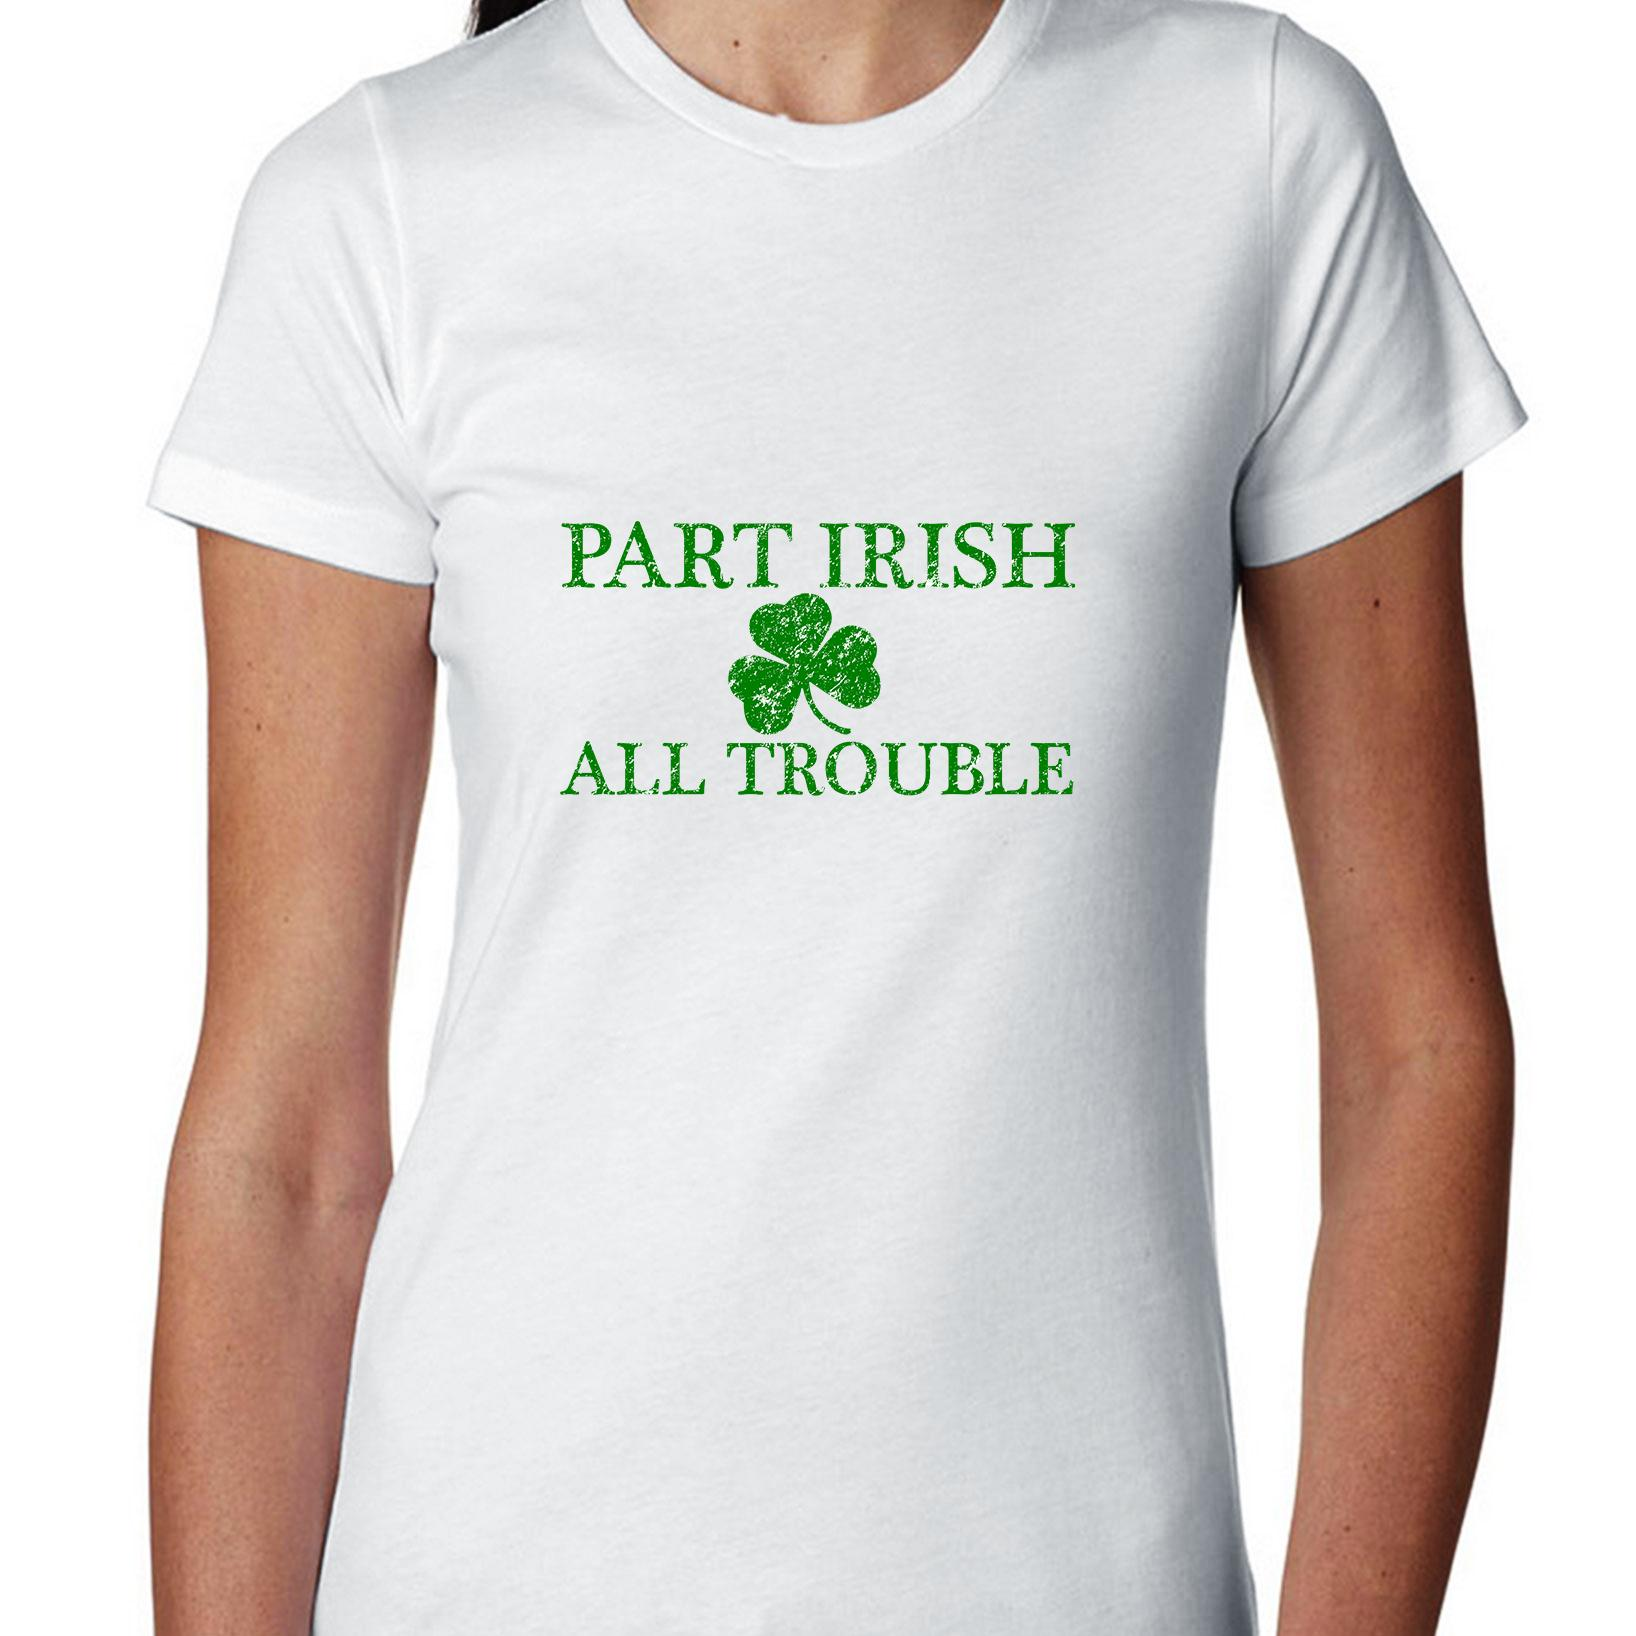 Part Irish All Trouble - St. Patricks Day Awesome Women's Cotton T-Shirt